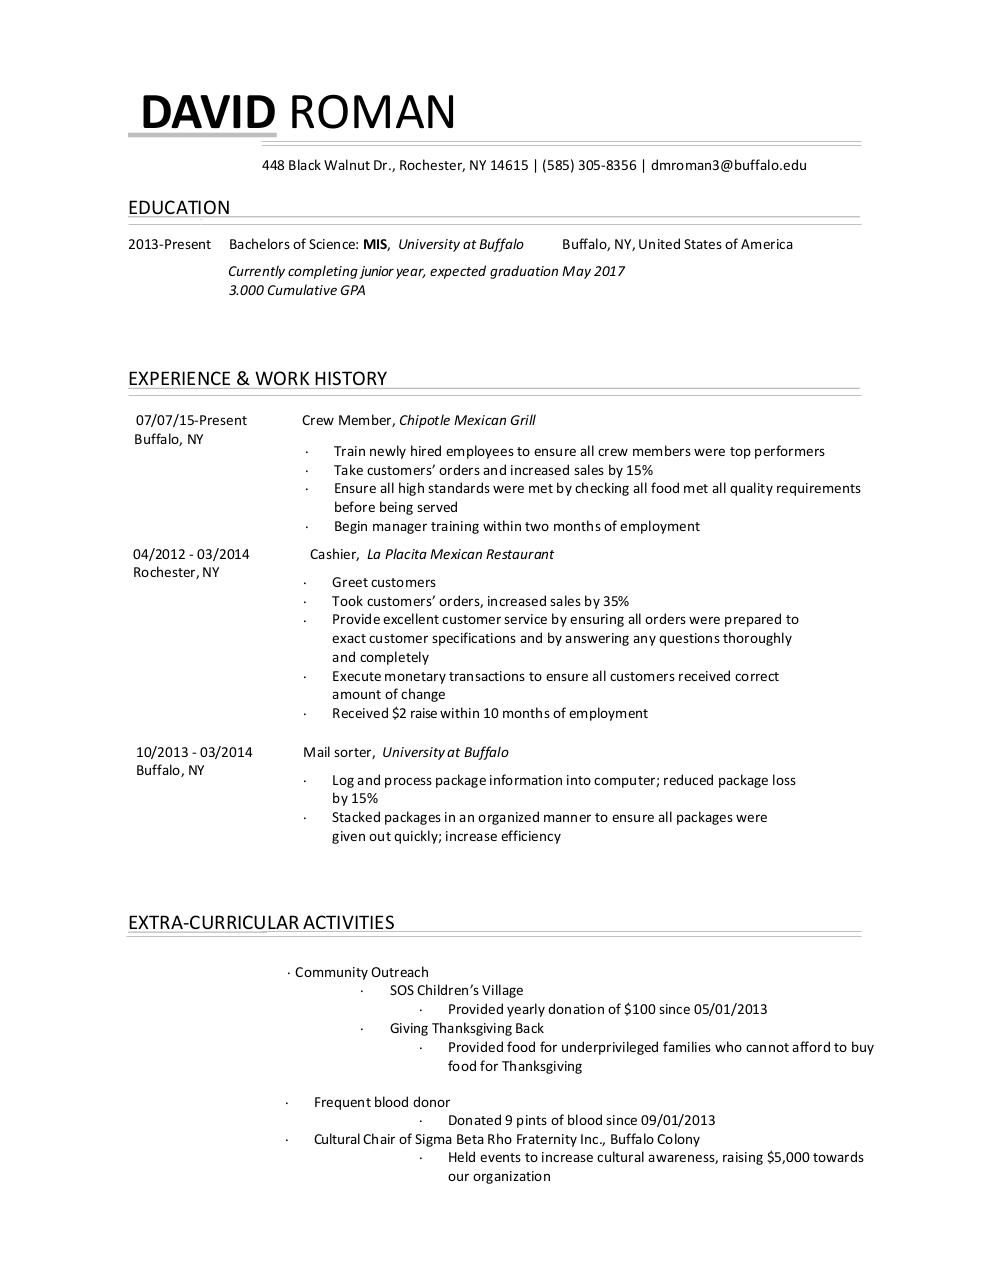 Annika S Get Paid To Write Or Review Page 1 Of 7 Resume On